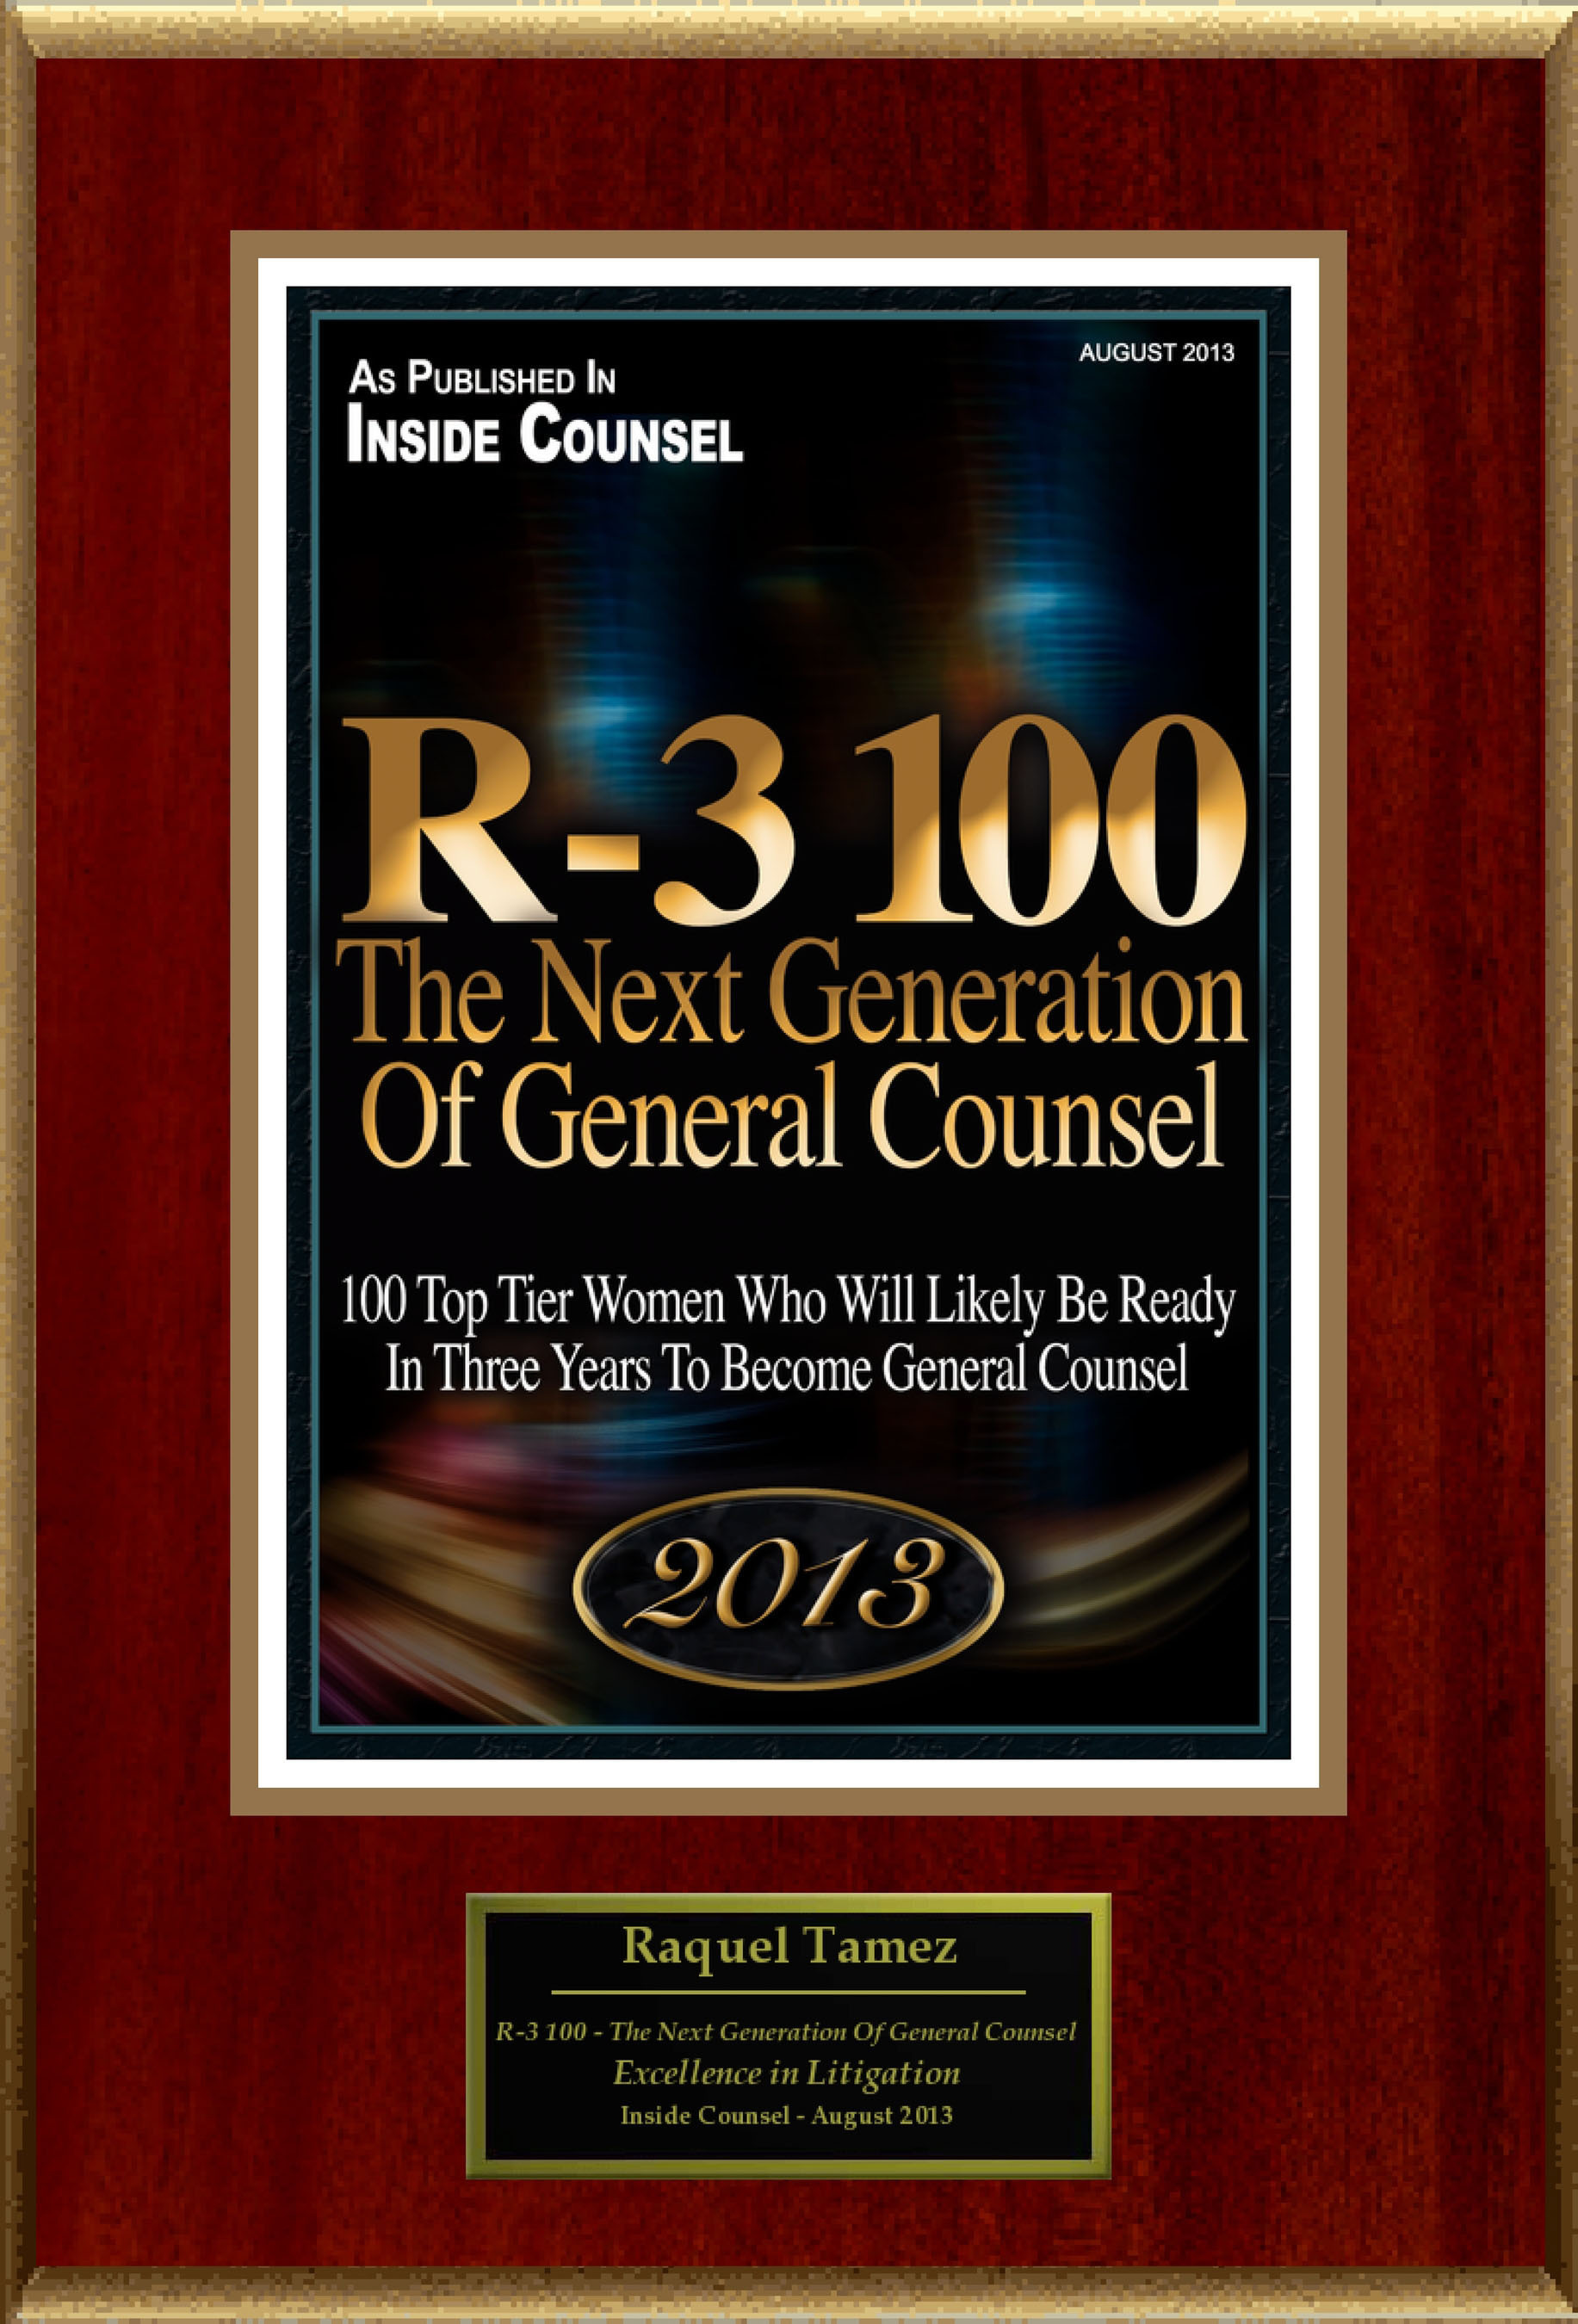 """Raquel Tamez Selected For """"R-3 100 - The Next Generation Of General Counsel"""". (PRNewsFoto/American Registry) (PRNewsFoto/AMERICAN REGISTRY)"""